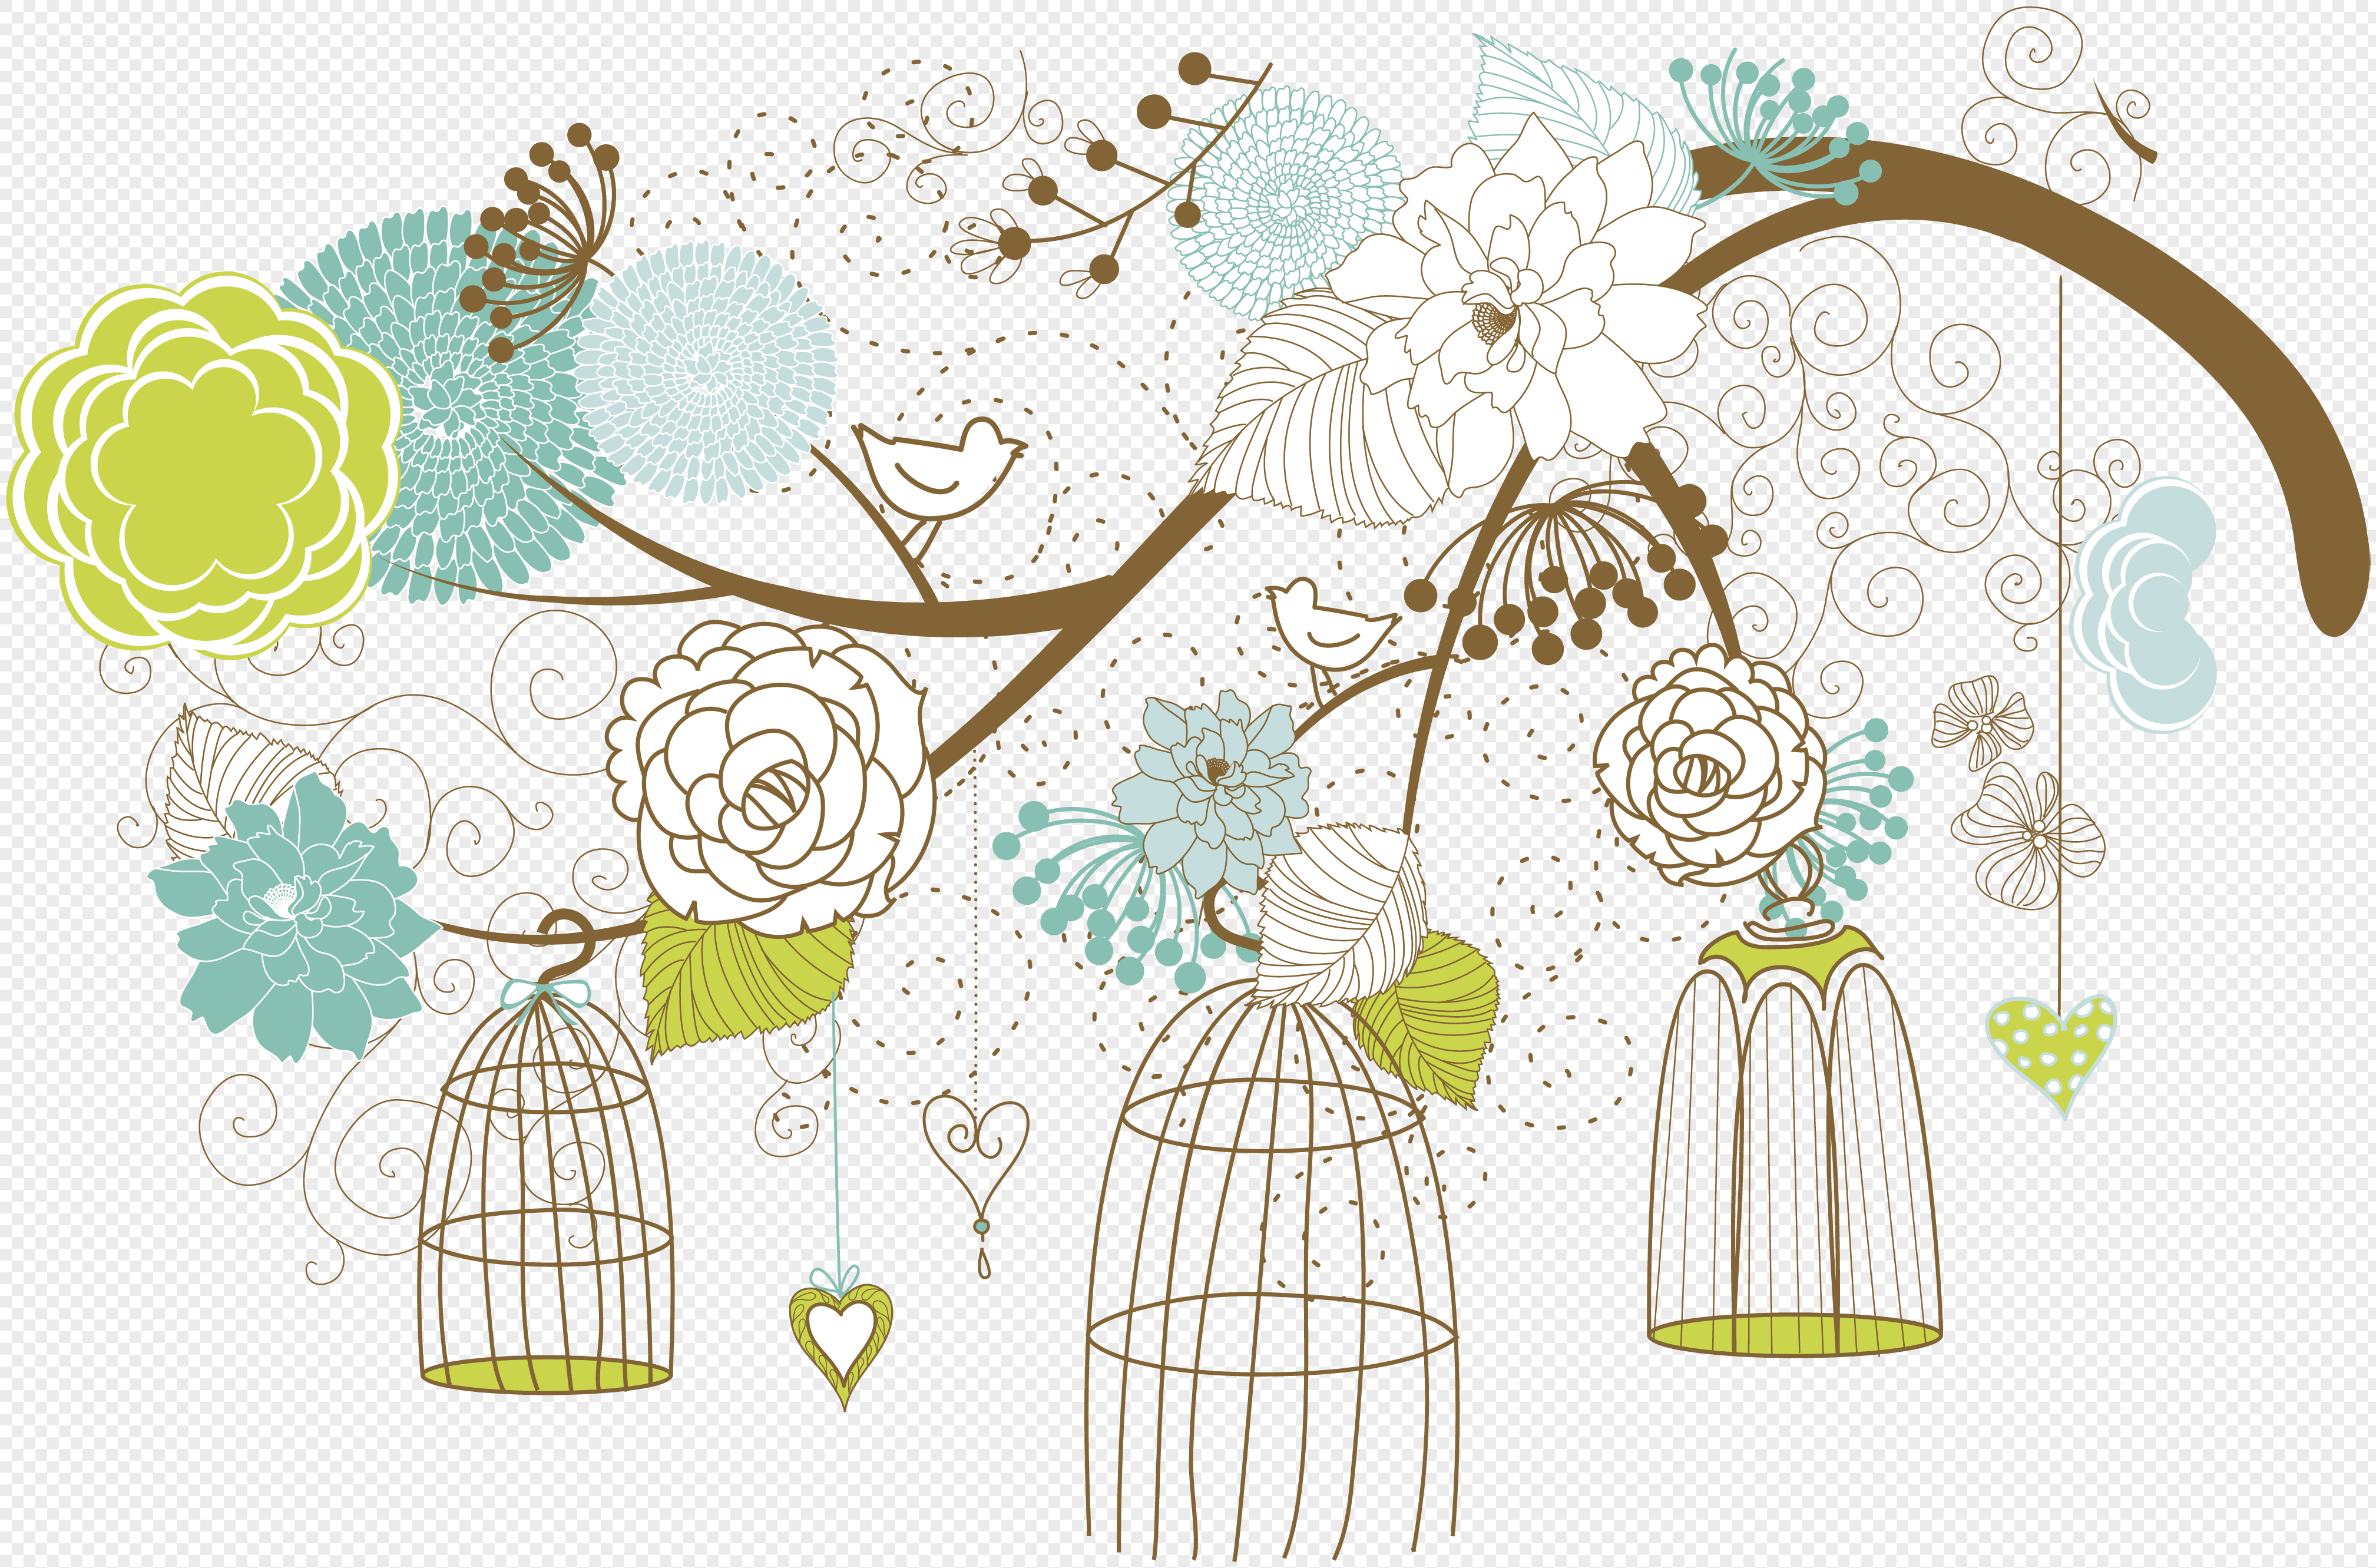 vectorial bird cage vector image picture 400318770 free